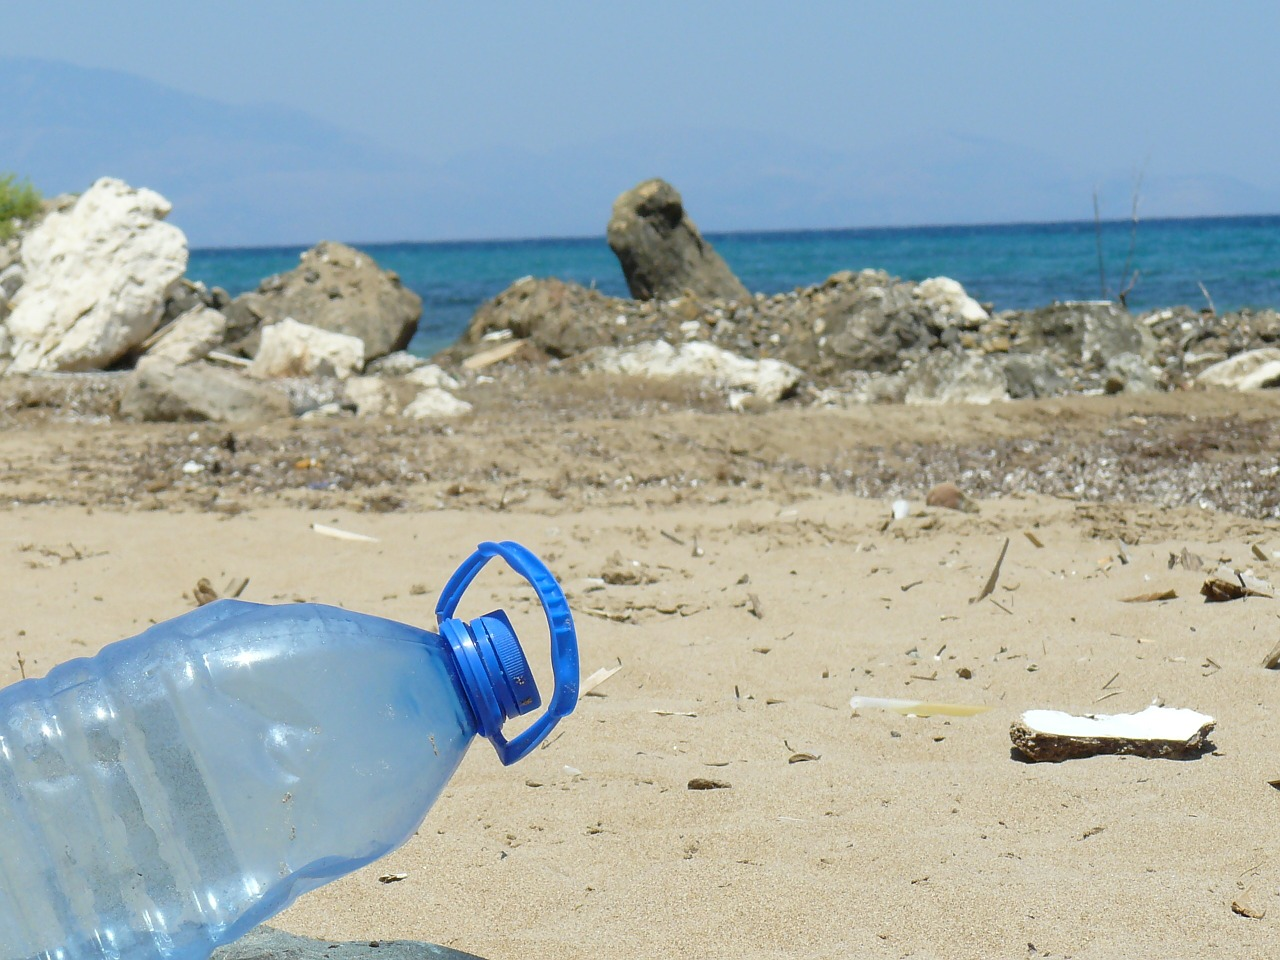 plastic-bottle-606881_1280.jpg